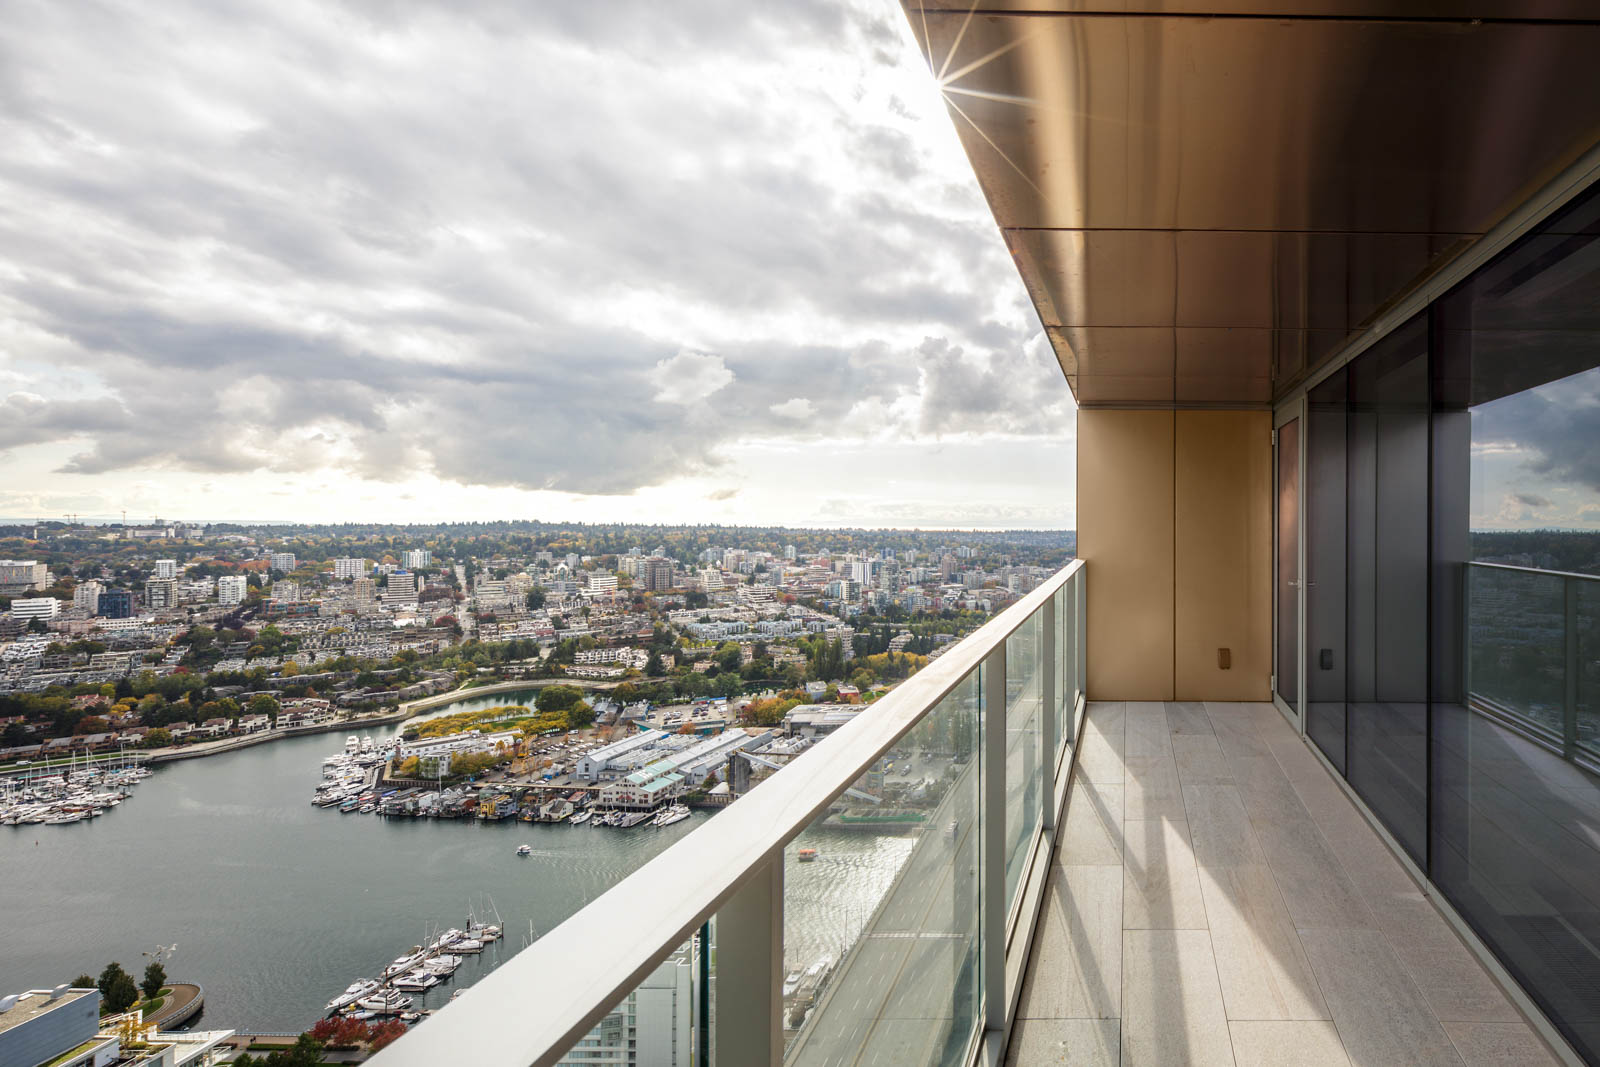 balcony with view from upscale Yaletown condo